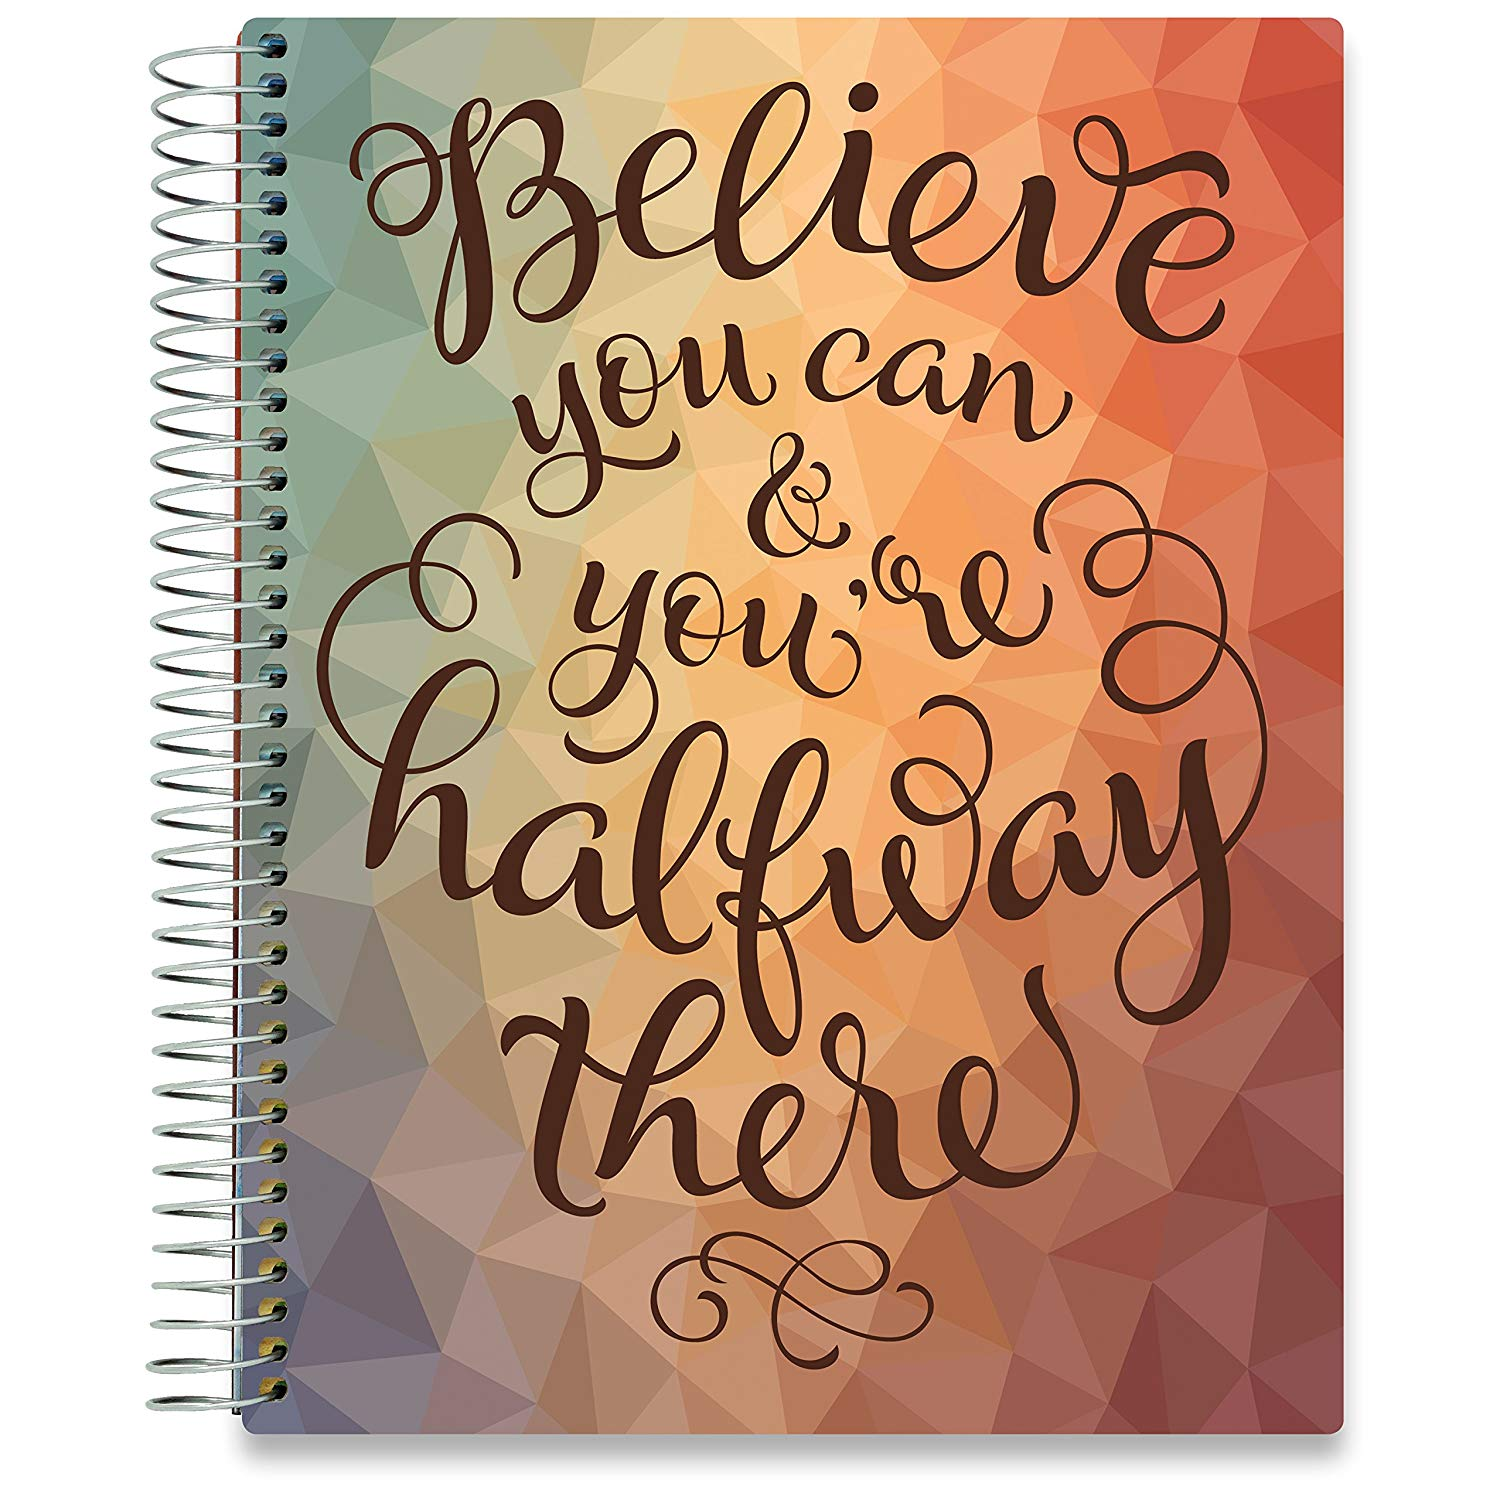 NEW: April 2020-2021 Planner - 8.5x11 - Believe U Can - Tools4Wisdom